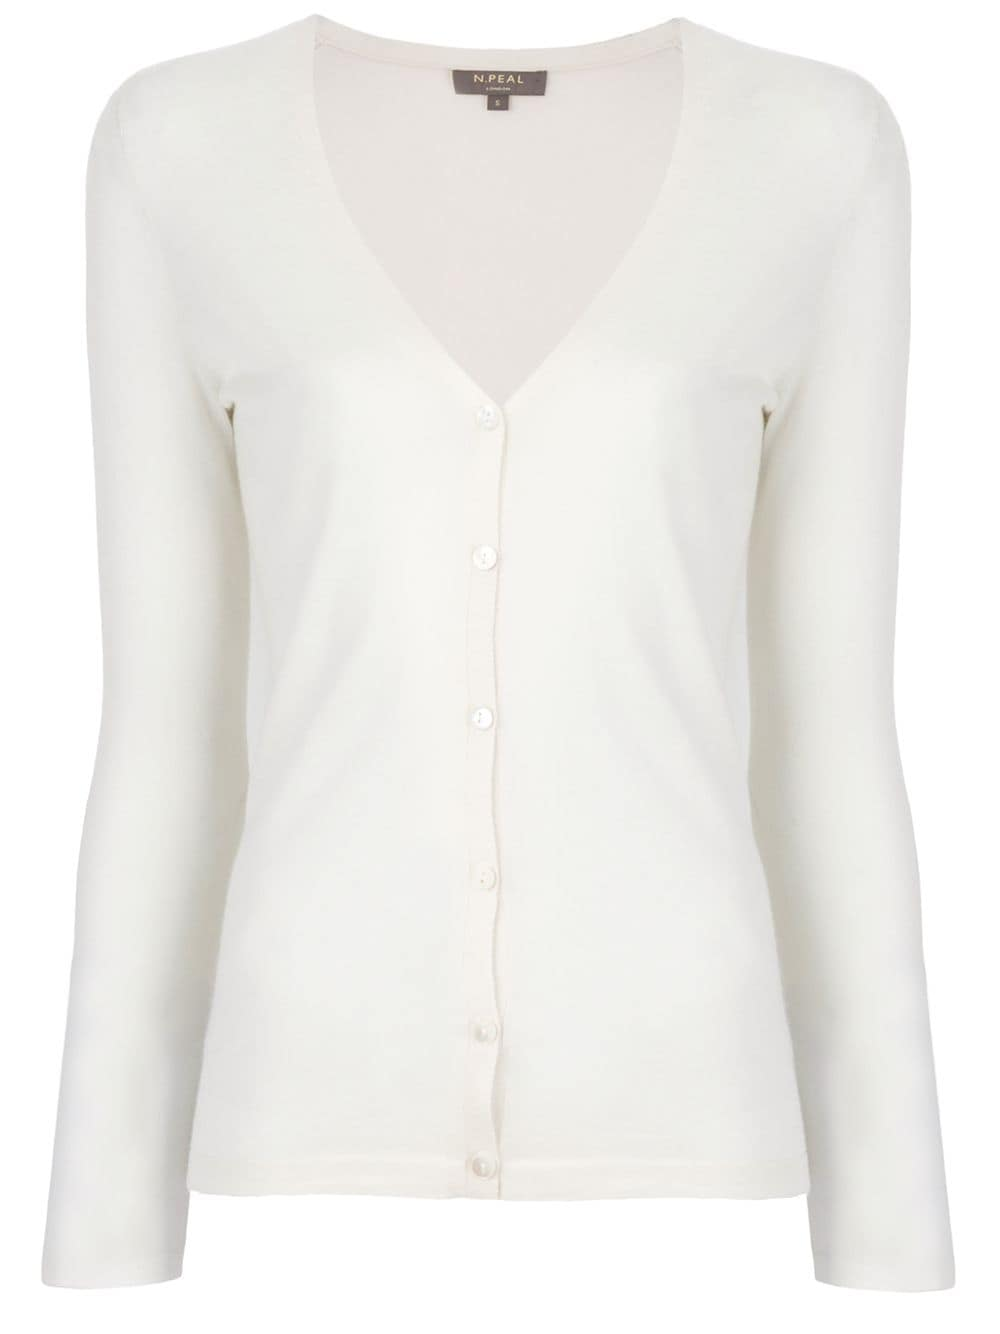 N.Peal superfine V-neck cardigan - White von N.Peal